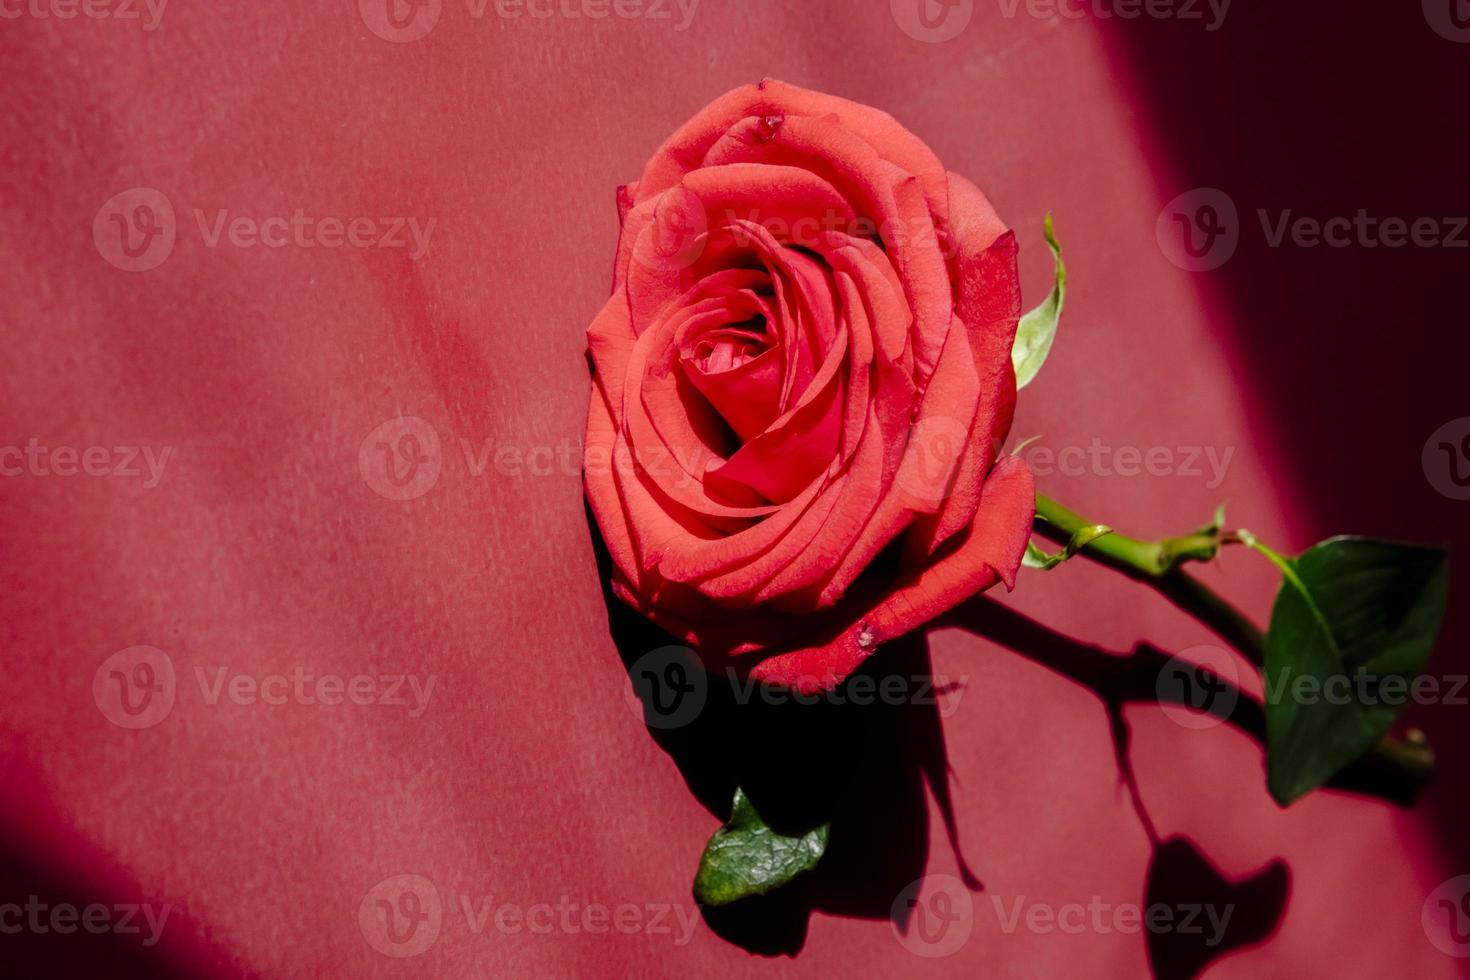 Red rose on red background photo